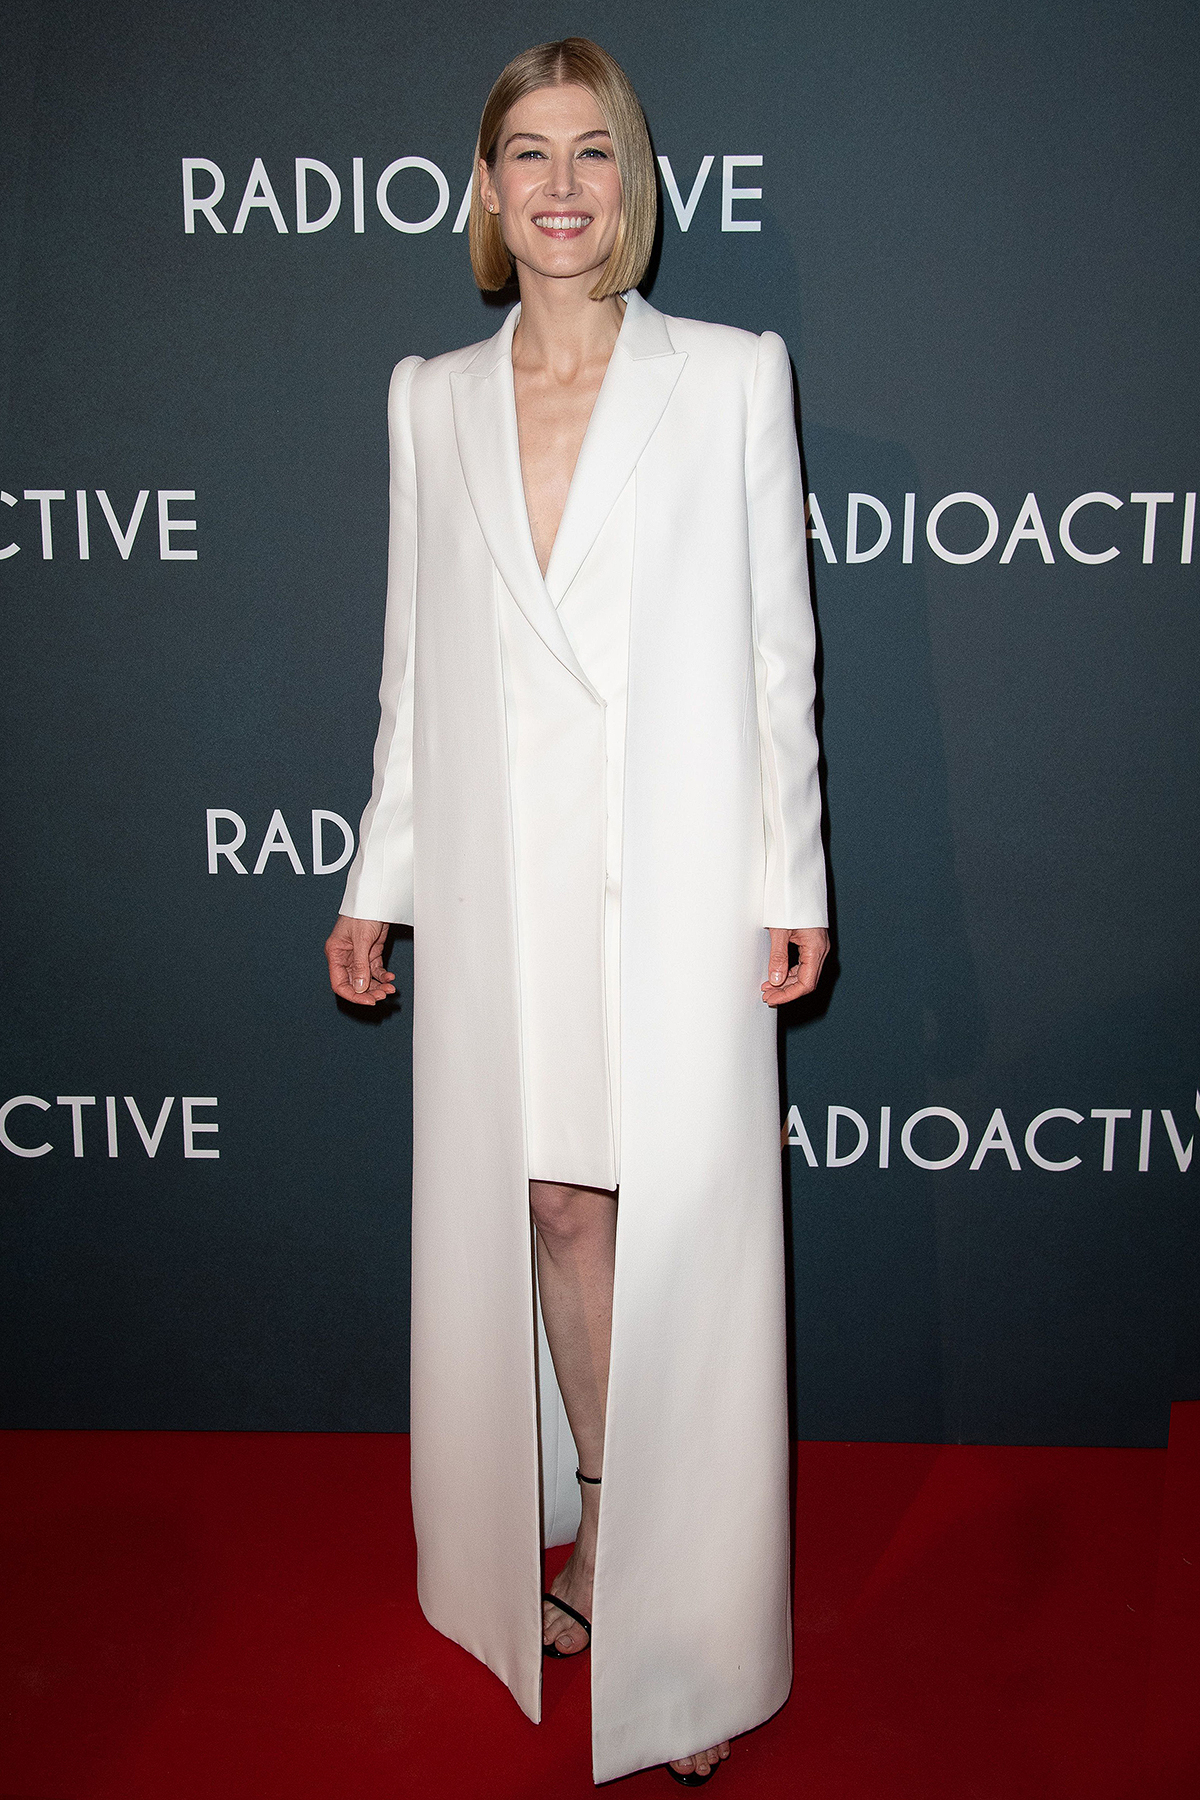 Rosamund Pike 'Radioactive' film premiere, UGC Danton, Paris, France - 24 Feb 2020